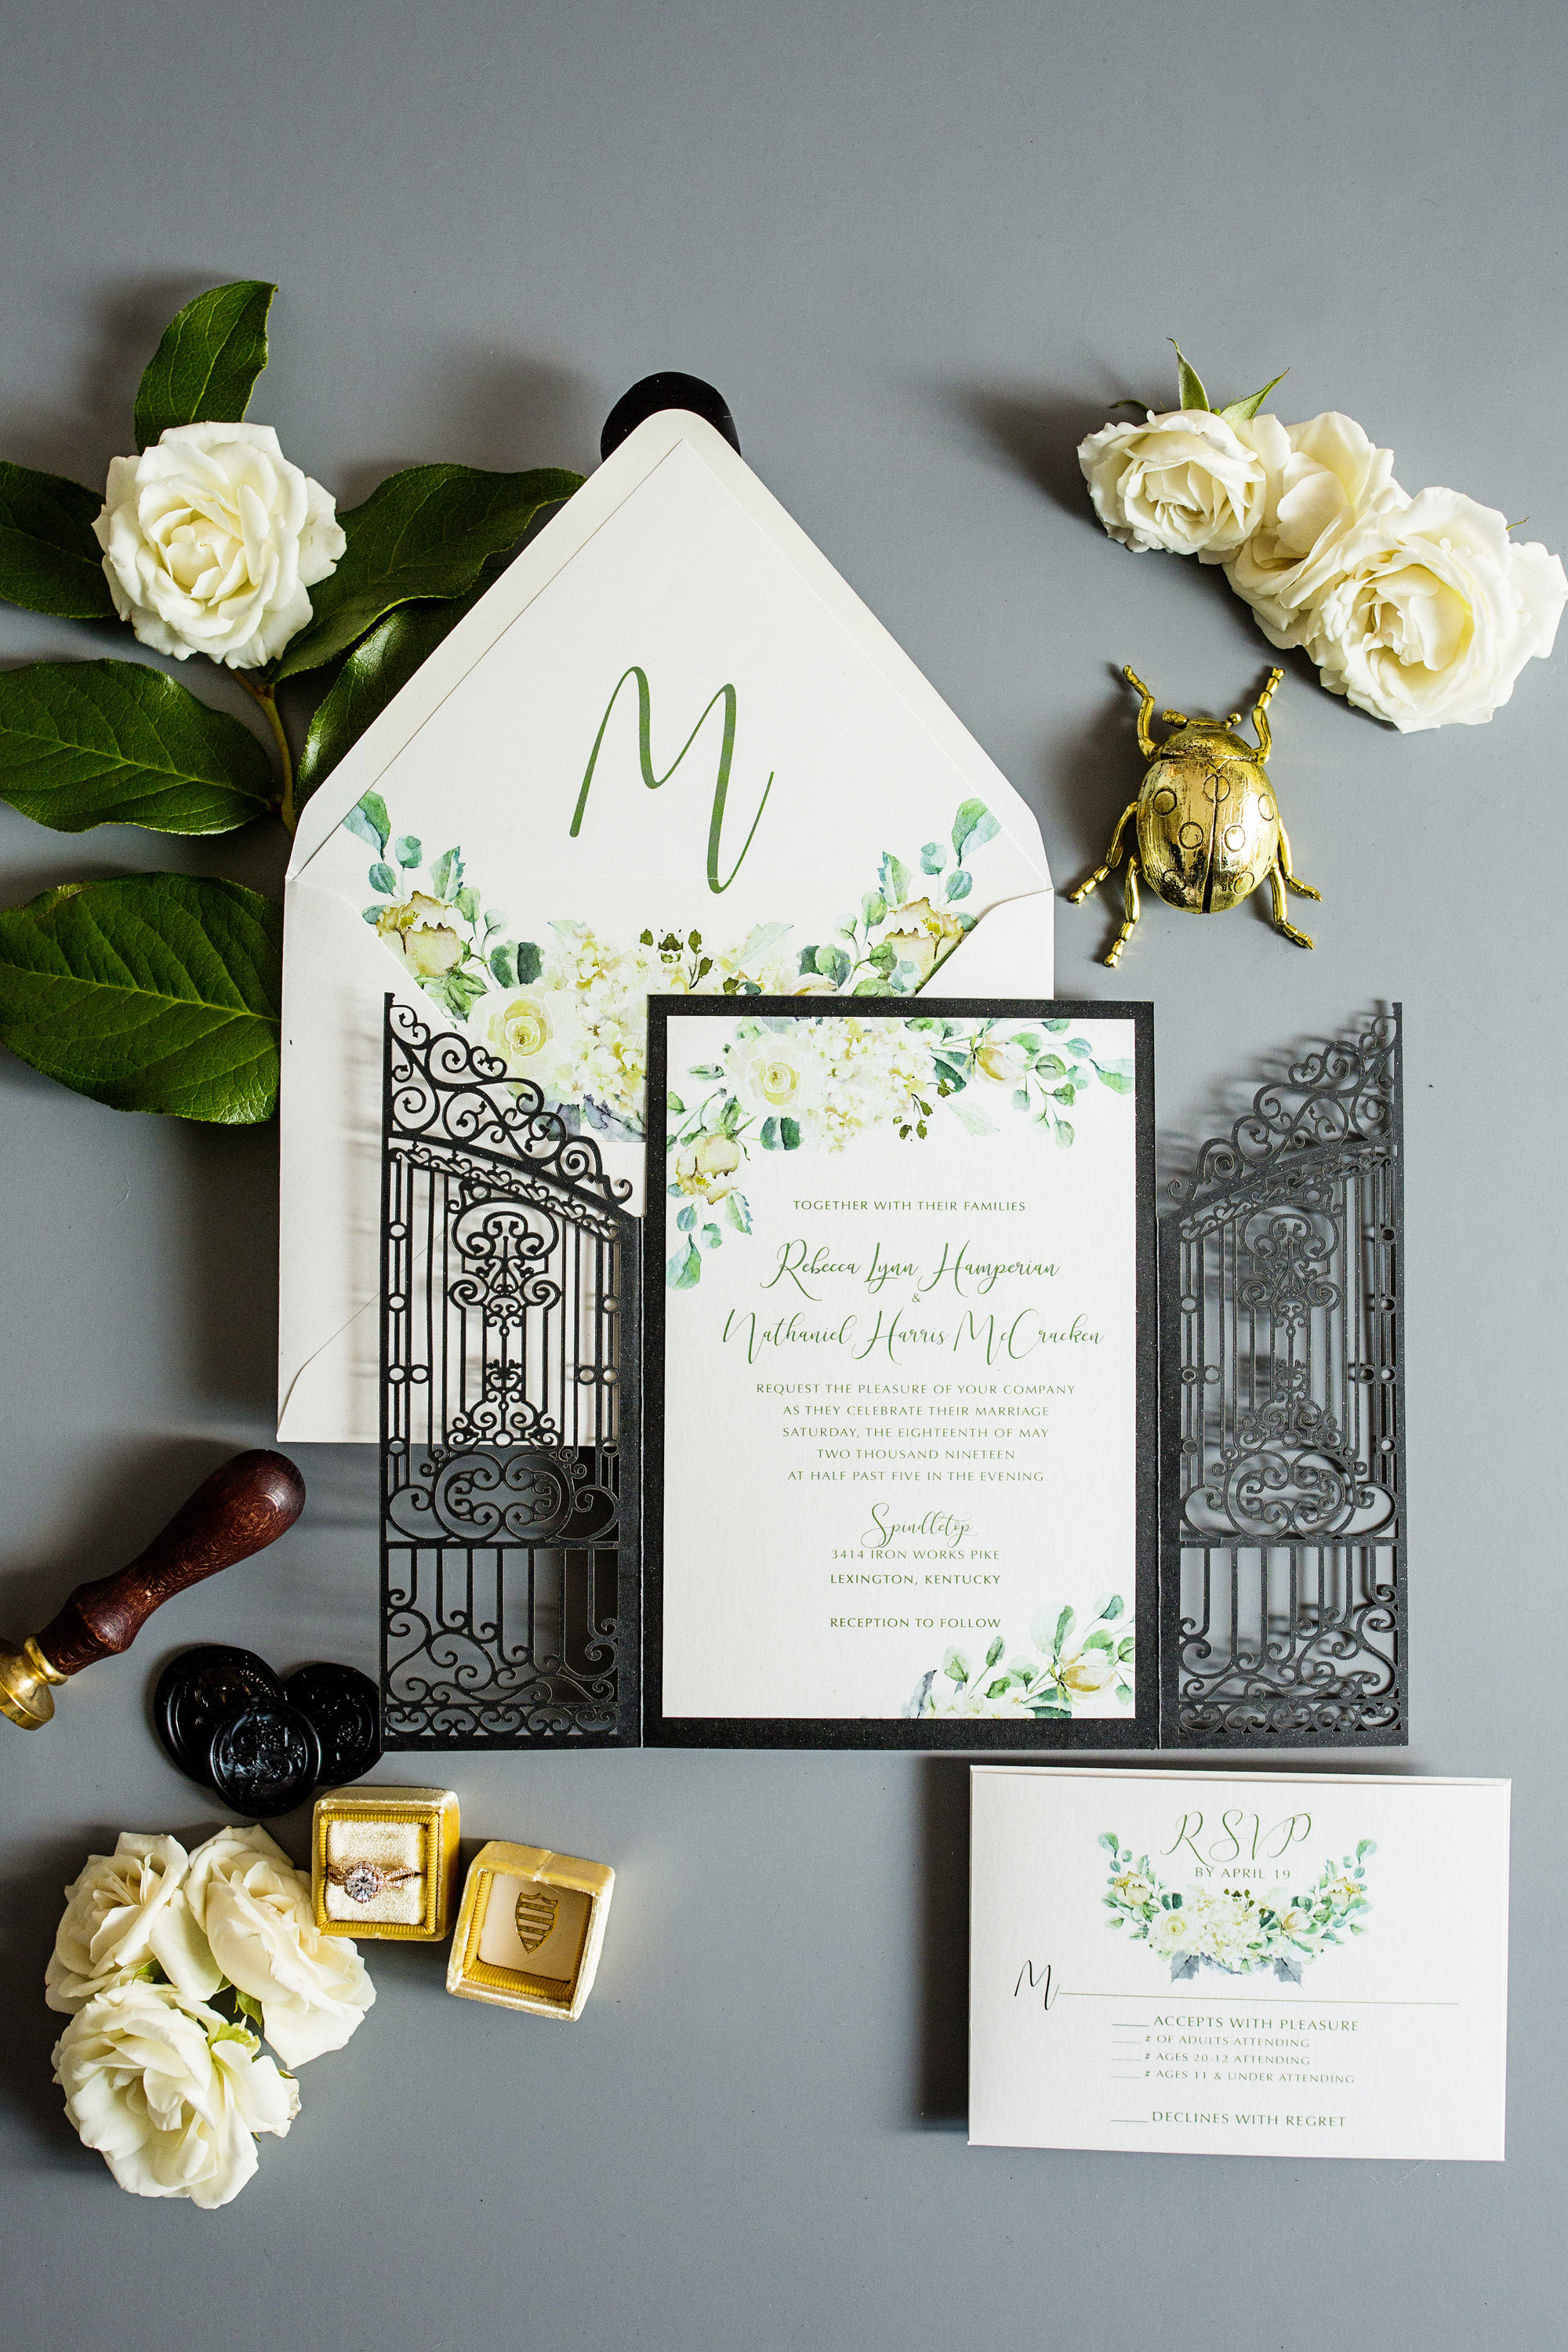 Seriously_Sabrina_Photography_Commercial_Simply_Done_Invites_2019_March_042